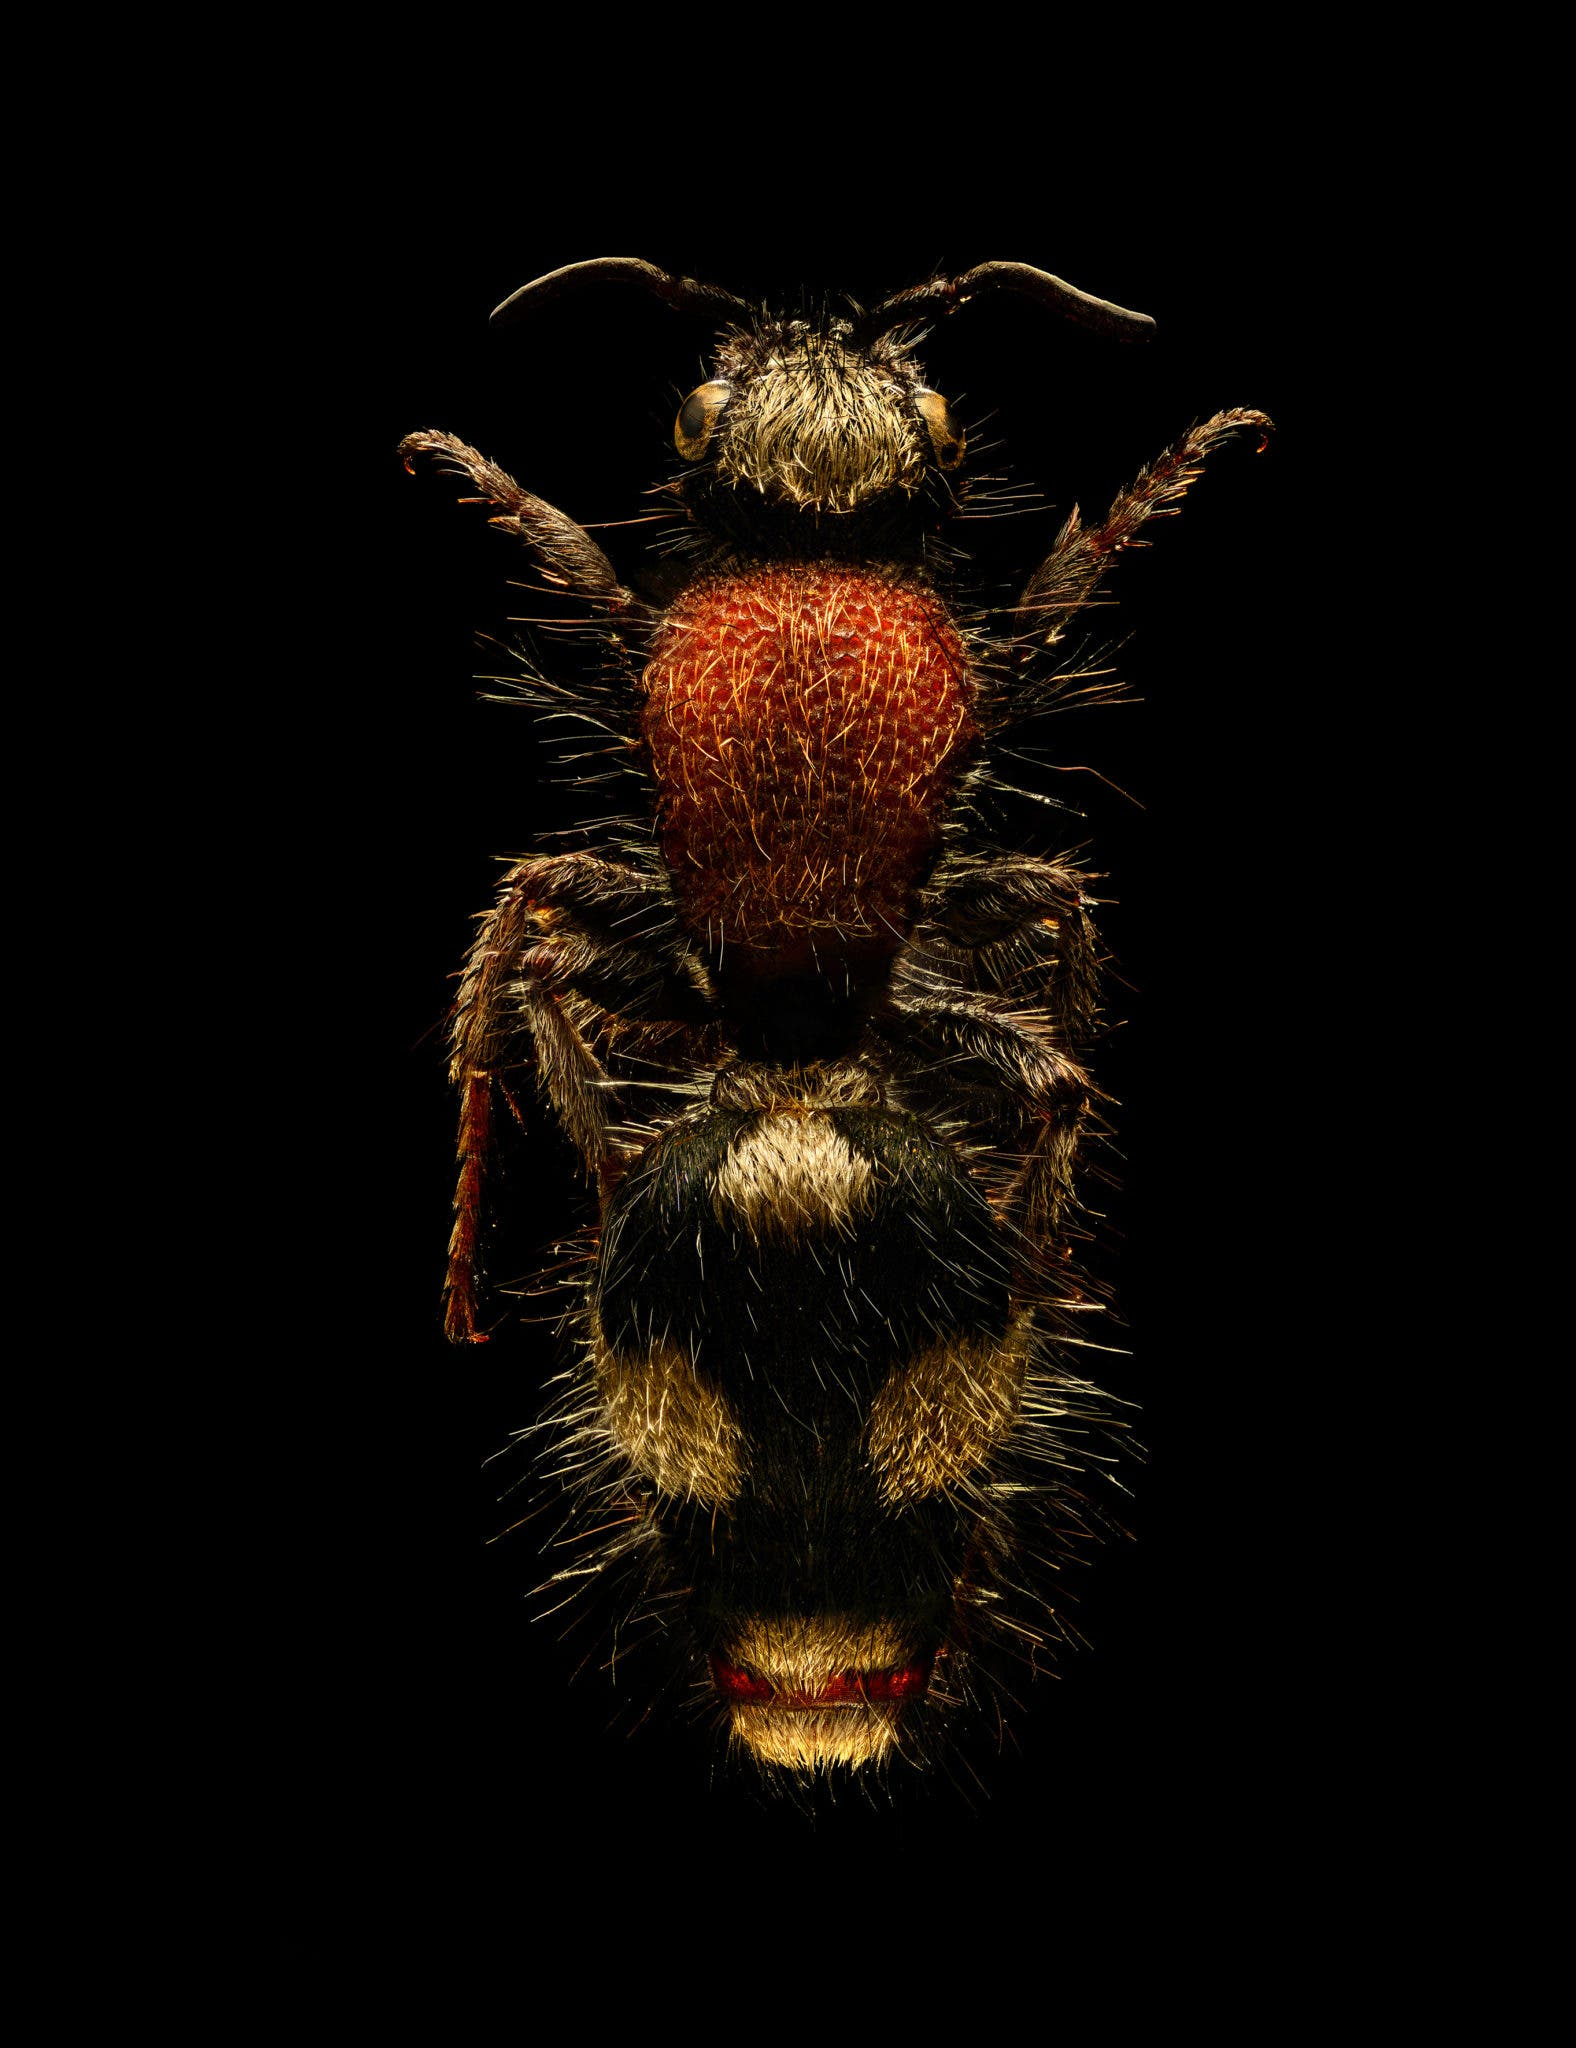 Microsculpture: Insanely Detailed Macro Photos of Bugs